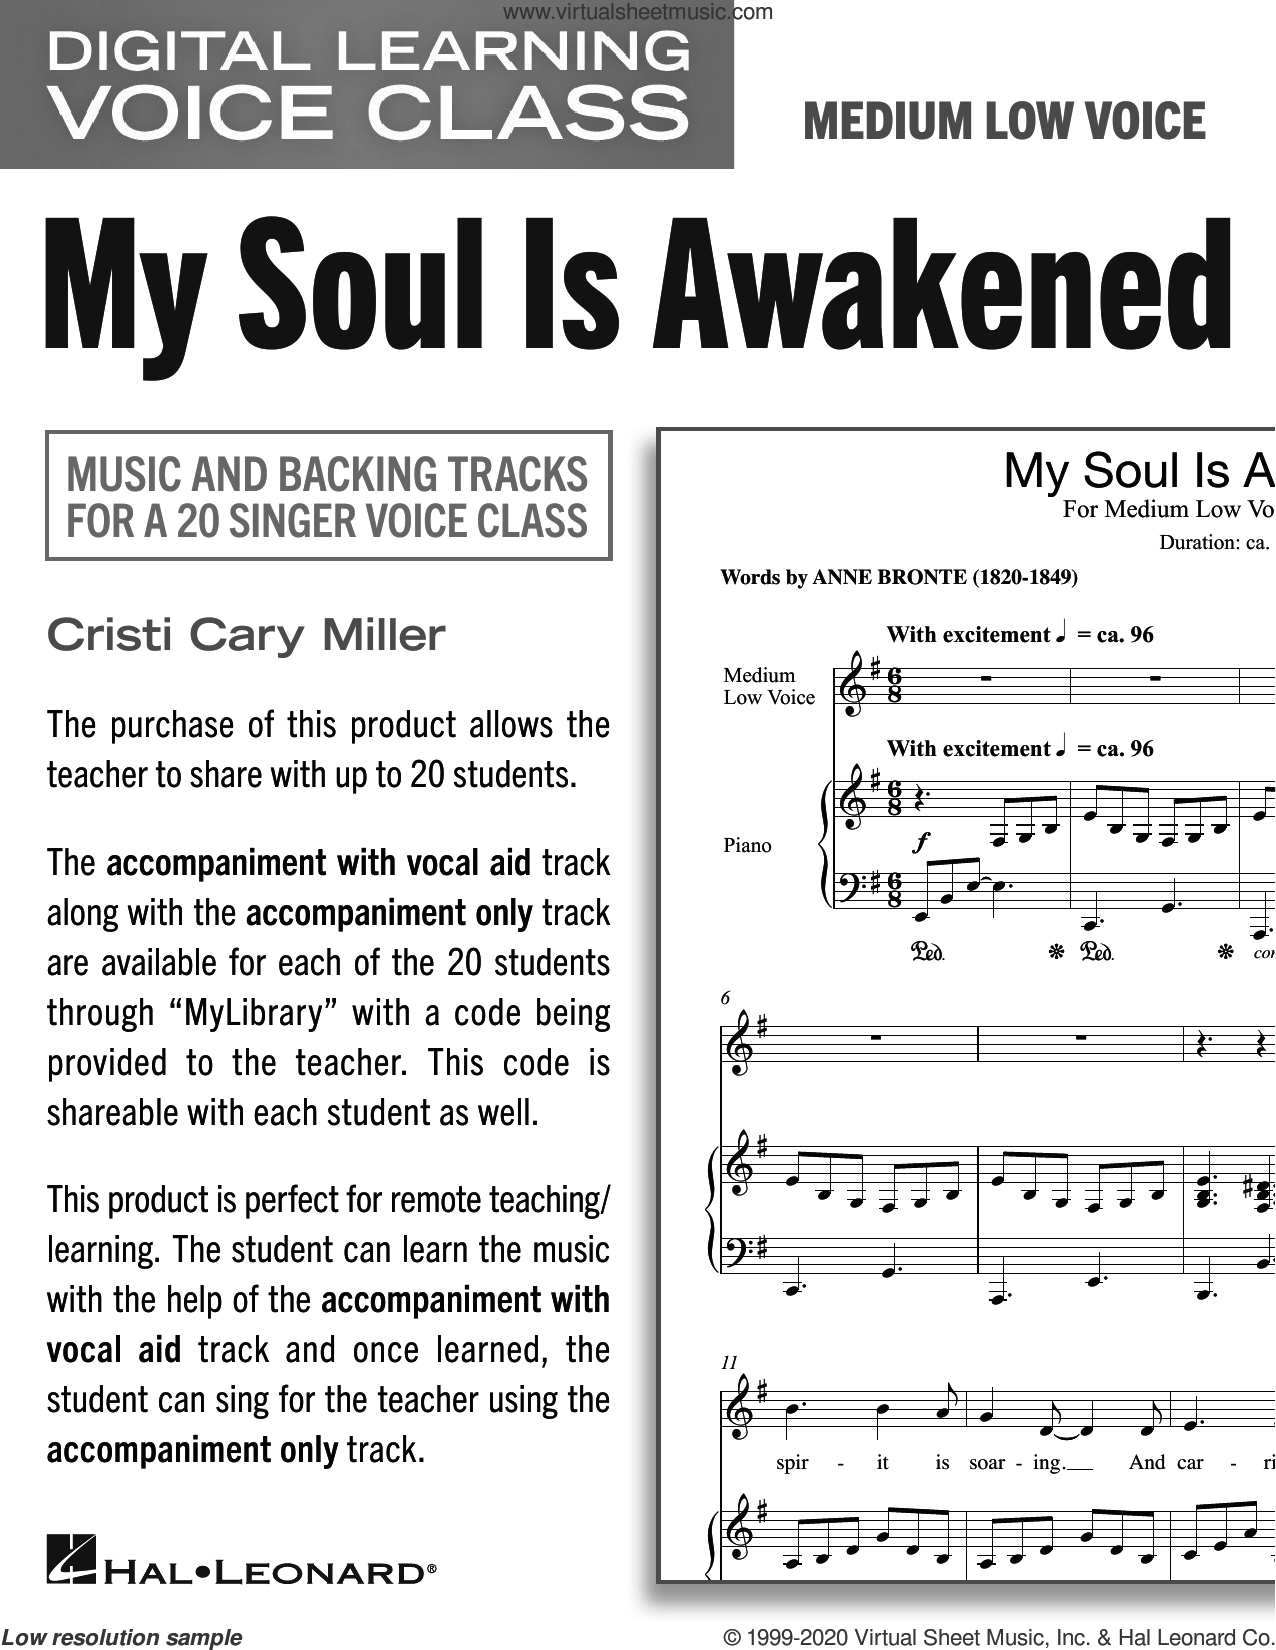 My Soul Is Awakened (Medium Low Voice) (includes Audio) sheet music for voice and piano (Medium Low Voice) by Cristi Cary Miller, intermediate skill level